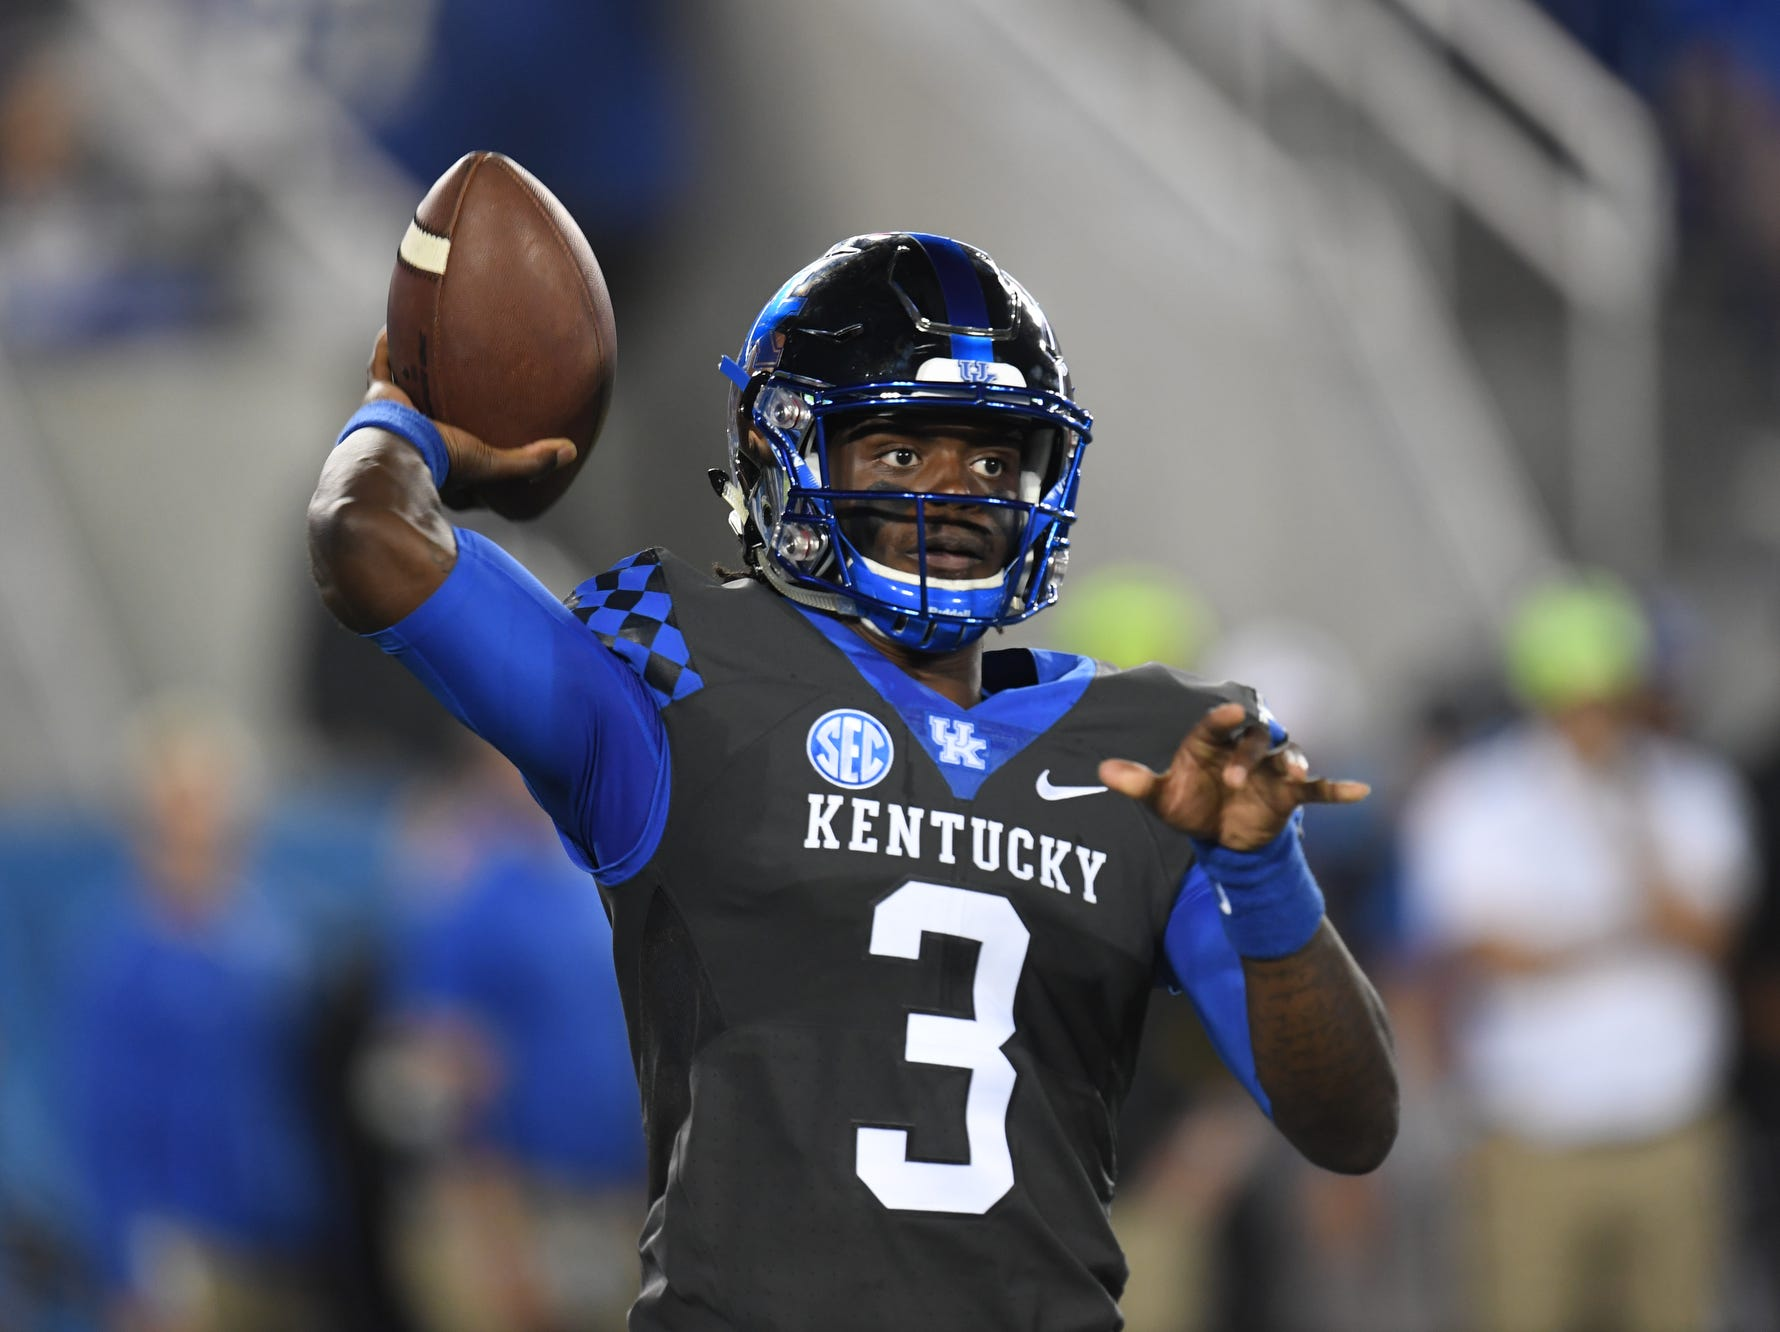 UK QB Terry Wilson passes during the University of Kentucky football game against South Carolina at Kroger Field in Lexington, Kentucky on Saturday, September 29, 2018.